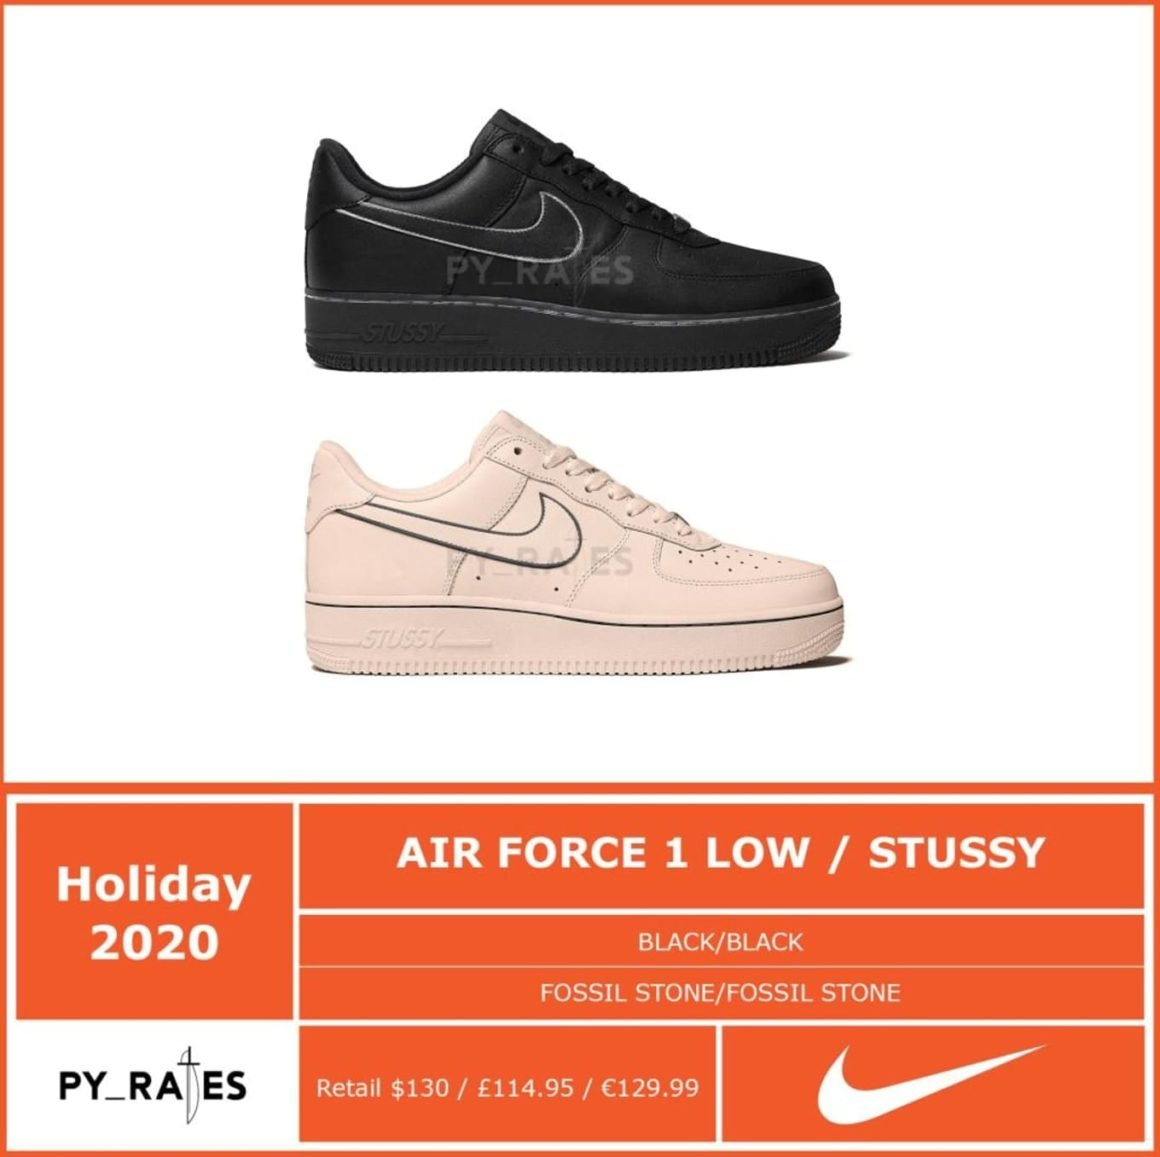 stussy-nike-air-force-1-low-holiday-2020